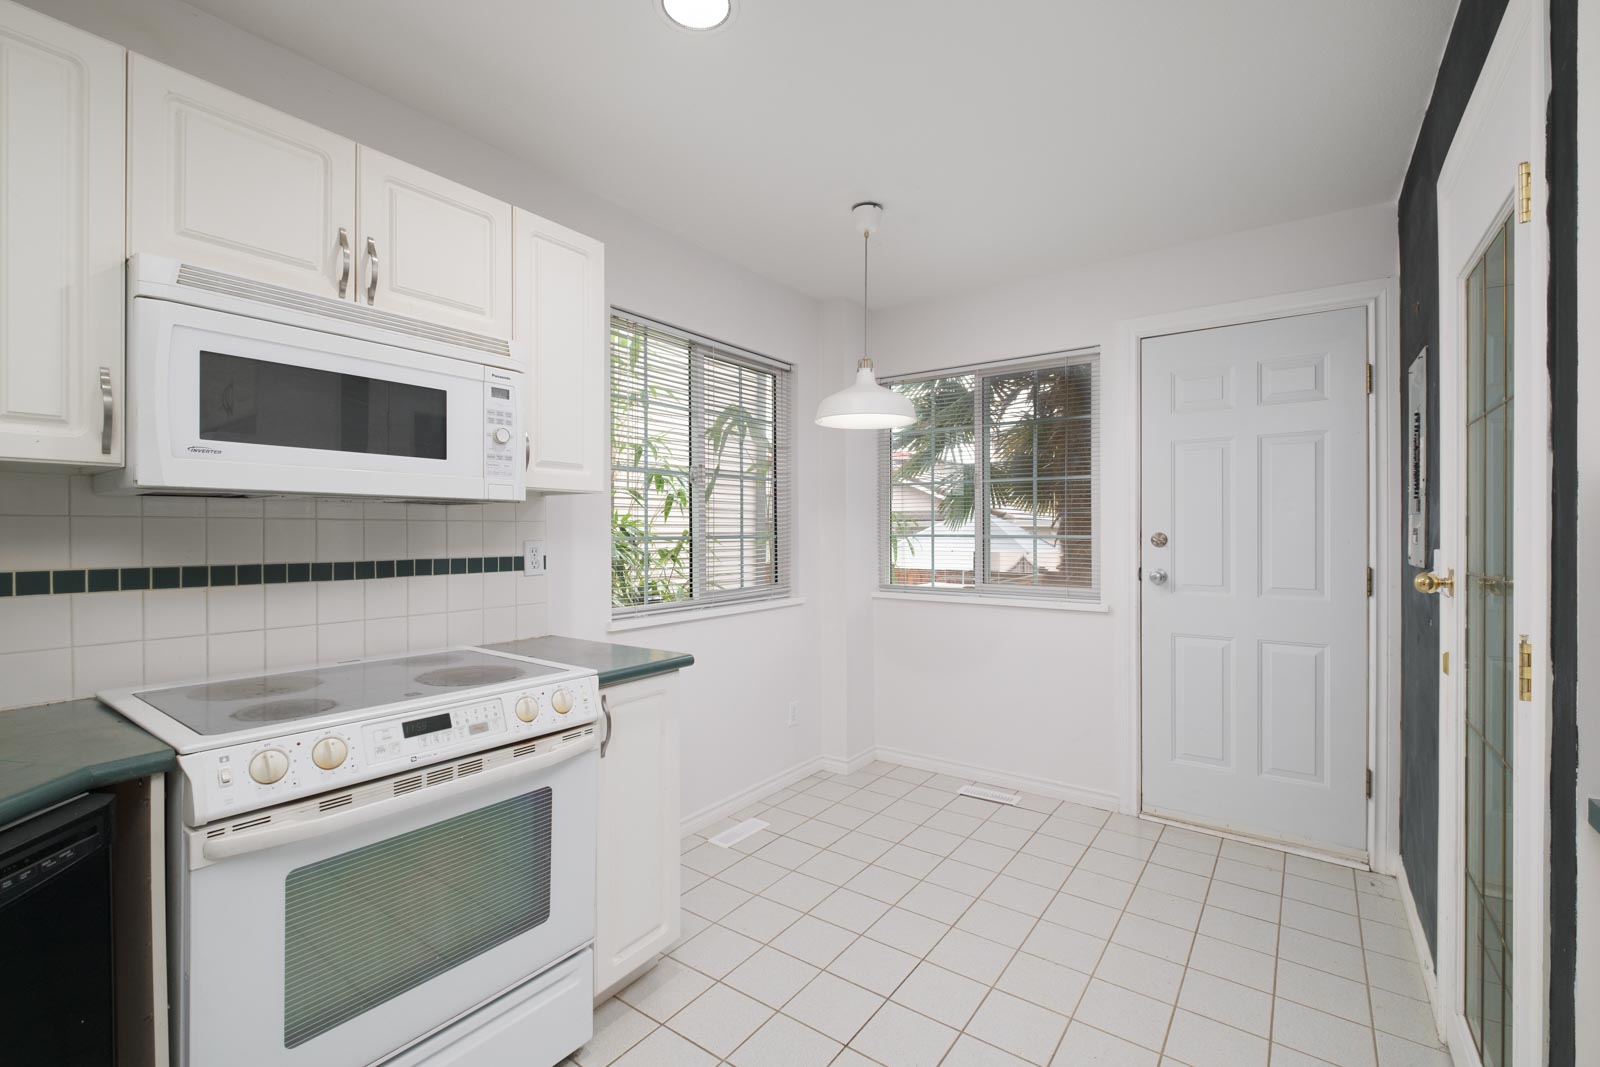 kitchen with over the top white microwave and white oven range on the left in east vancouver rental house